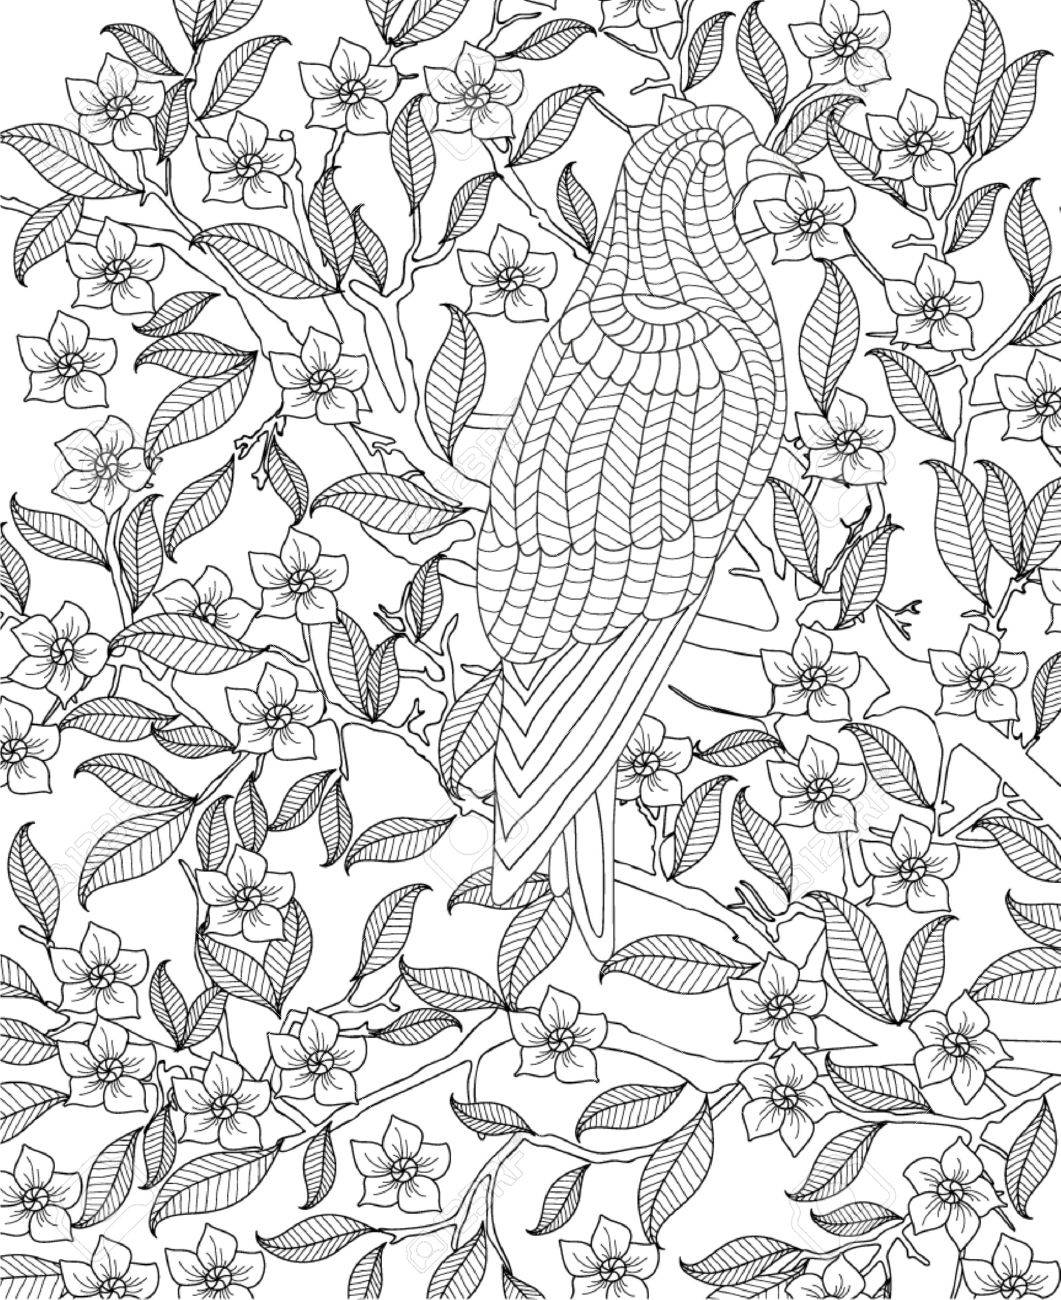 Hand Drawn Bird Coloring Page Royalty Free Cliparts Vectors And